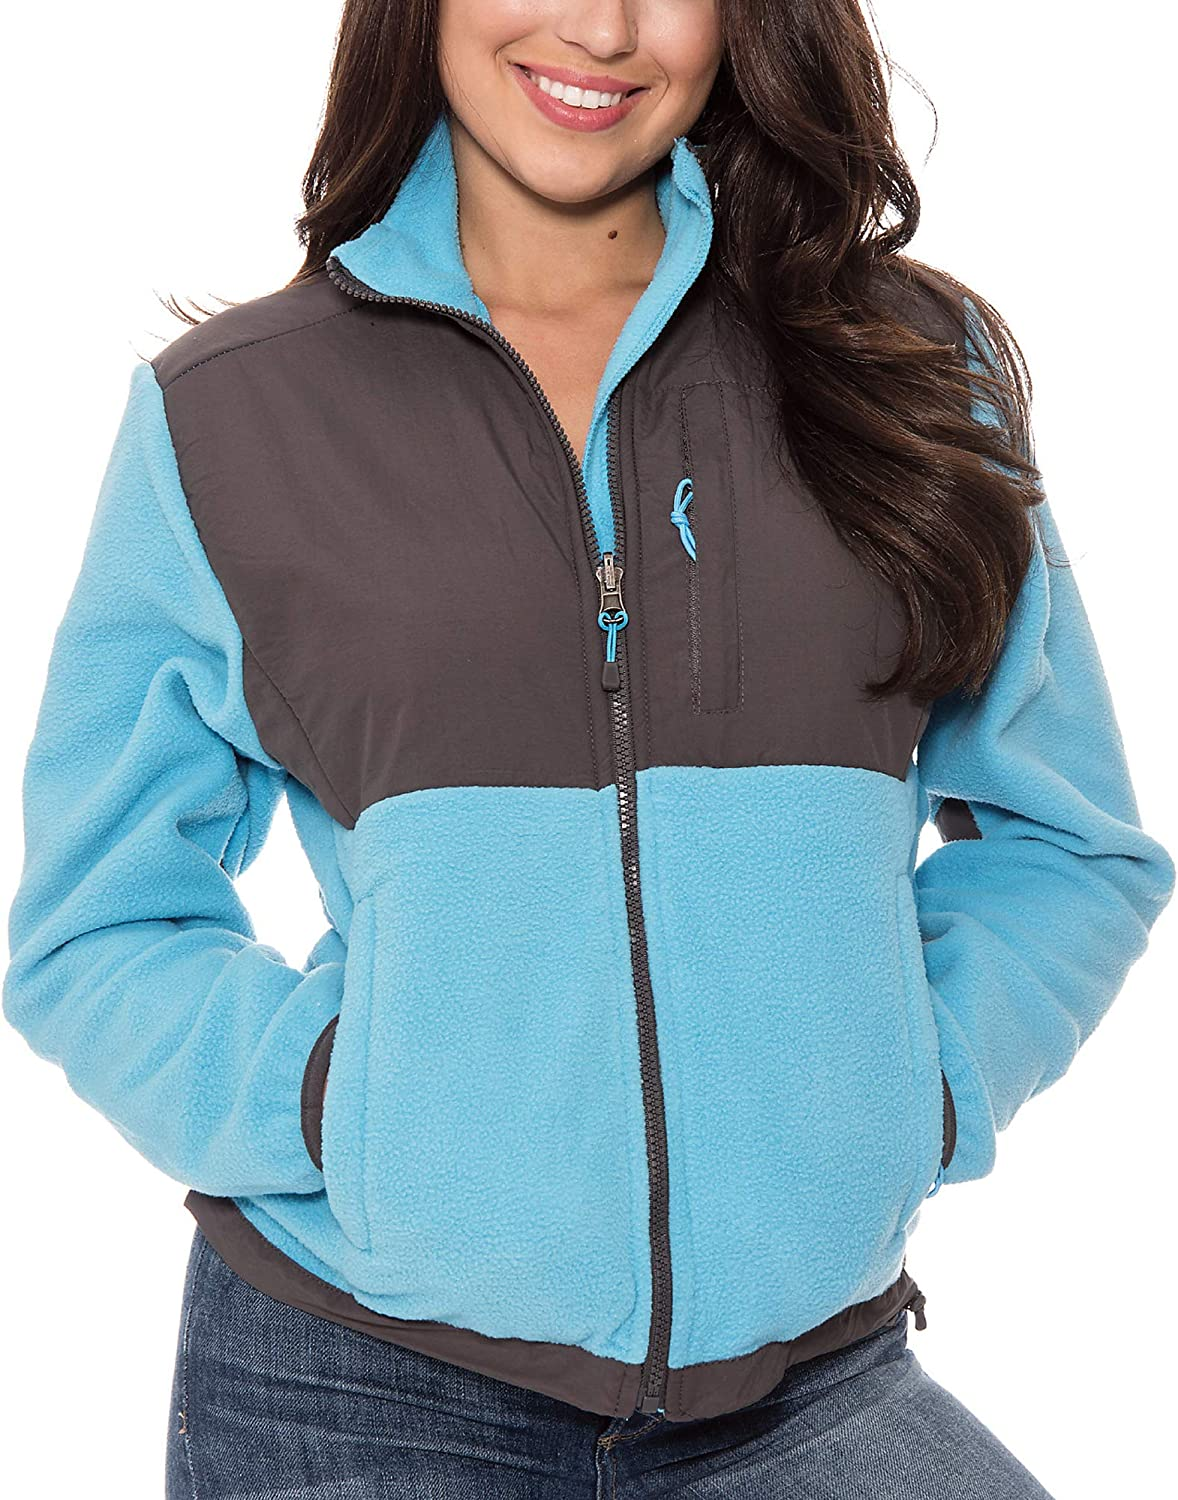 APPARELISM Women's Girl's Casual Warm Fleece Jacket with Pockets for Recreation, Work-Out and Lounge.